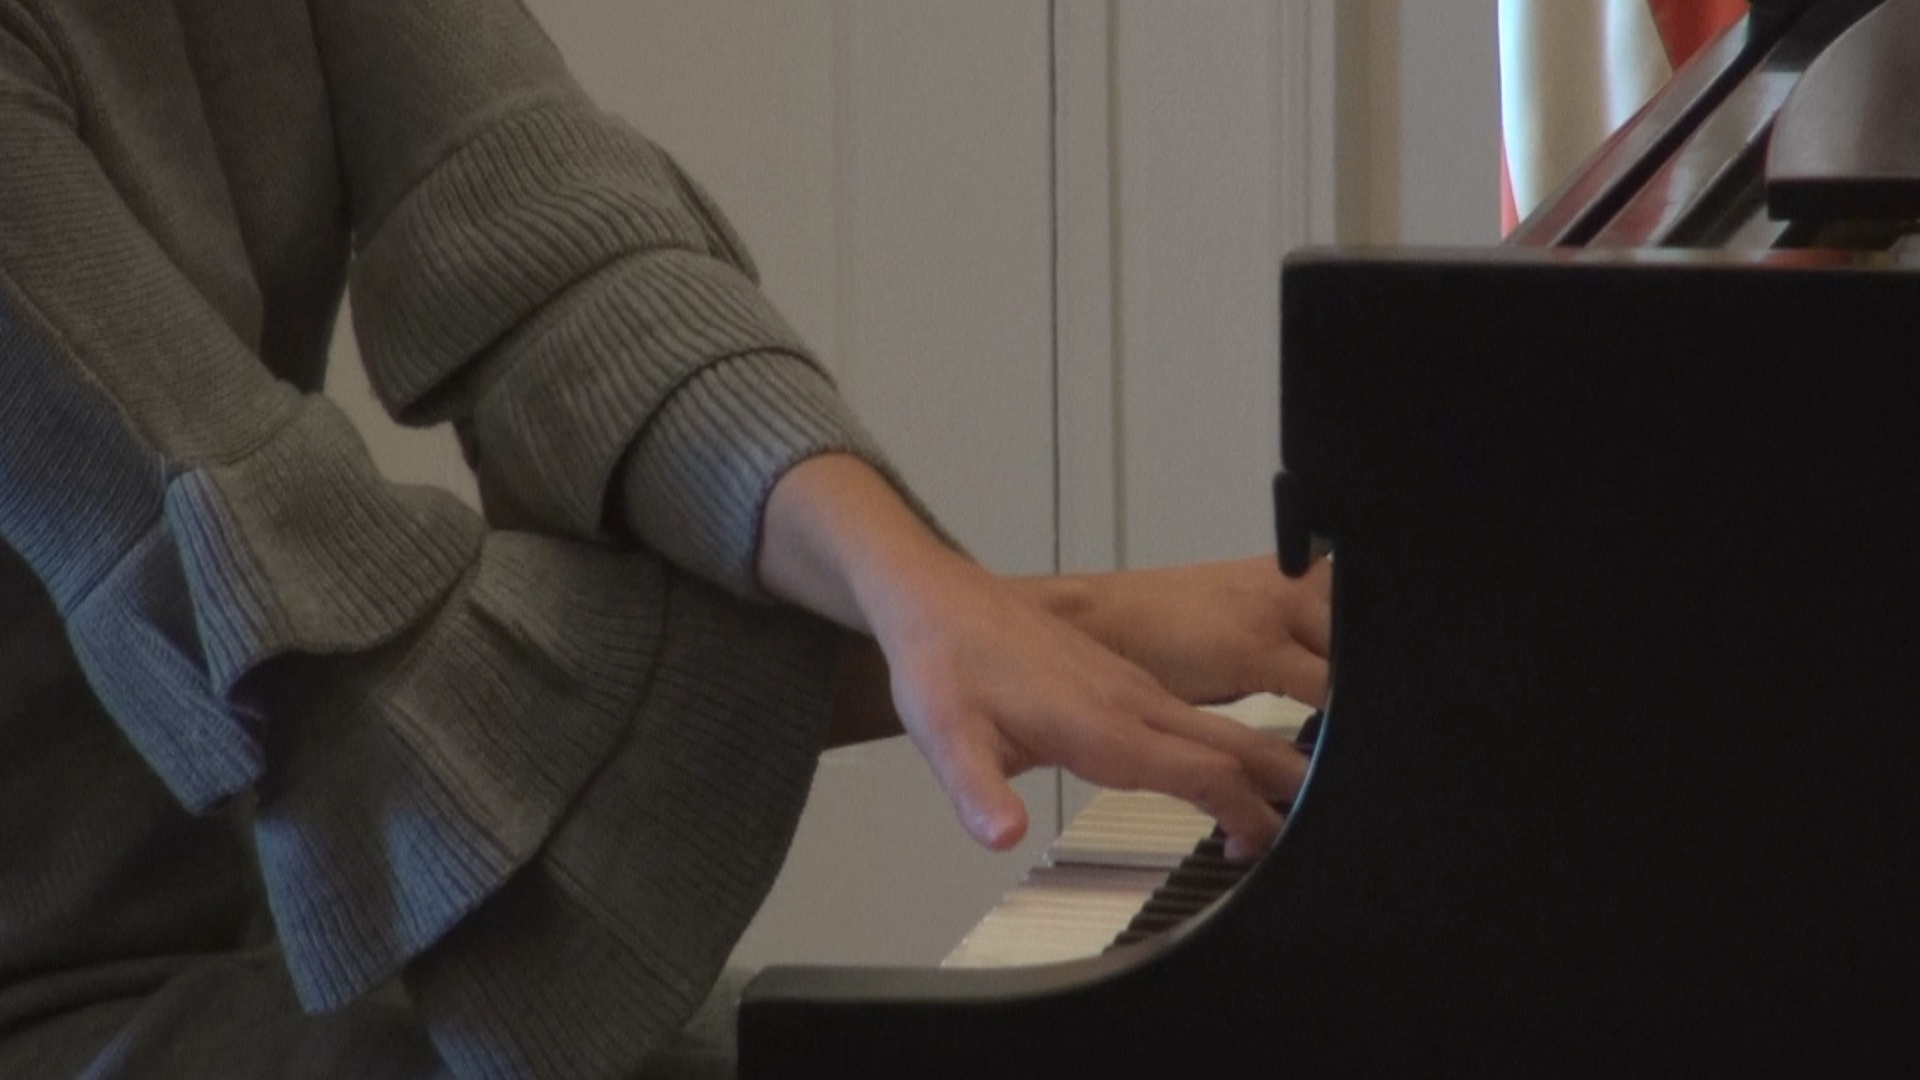 Piano player at Cultural Foundation of Harrison County event